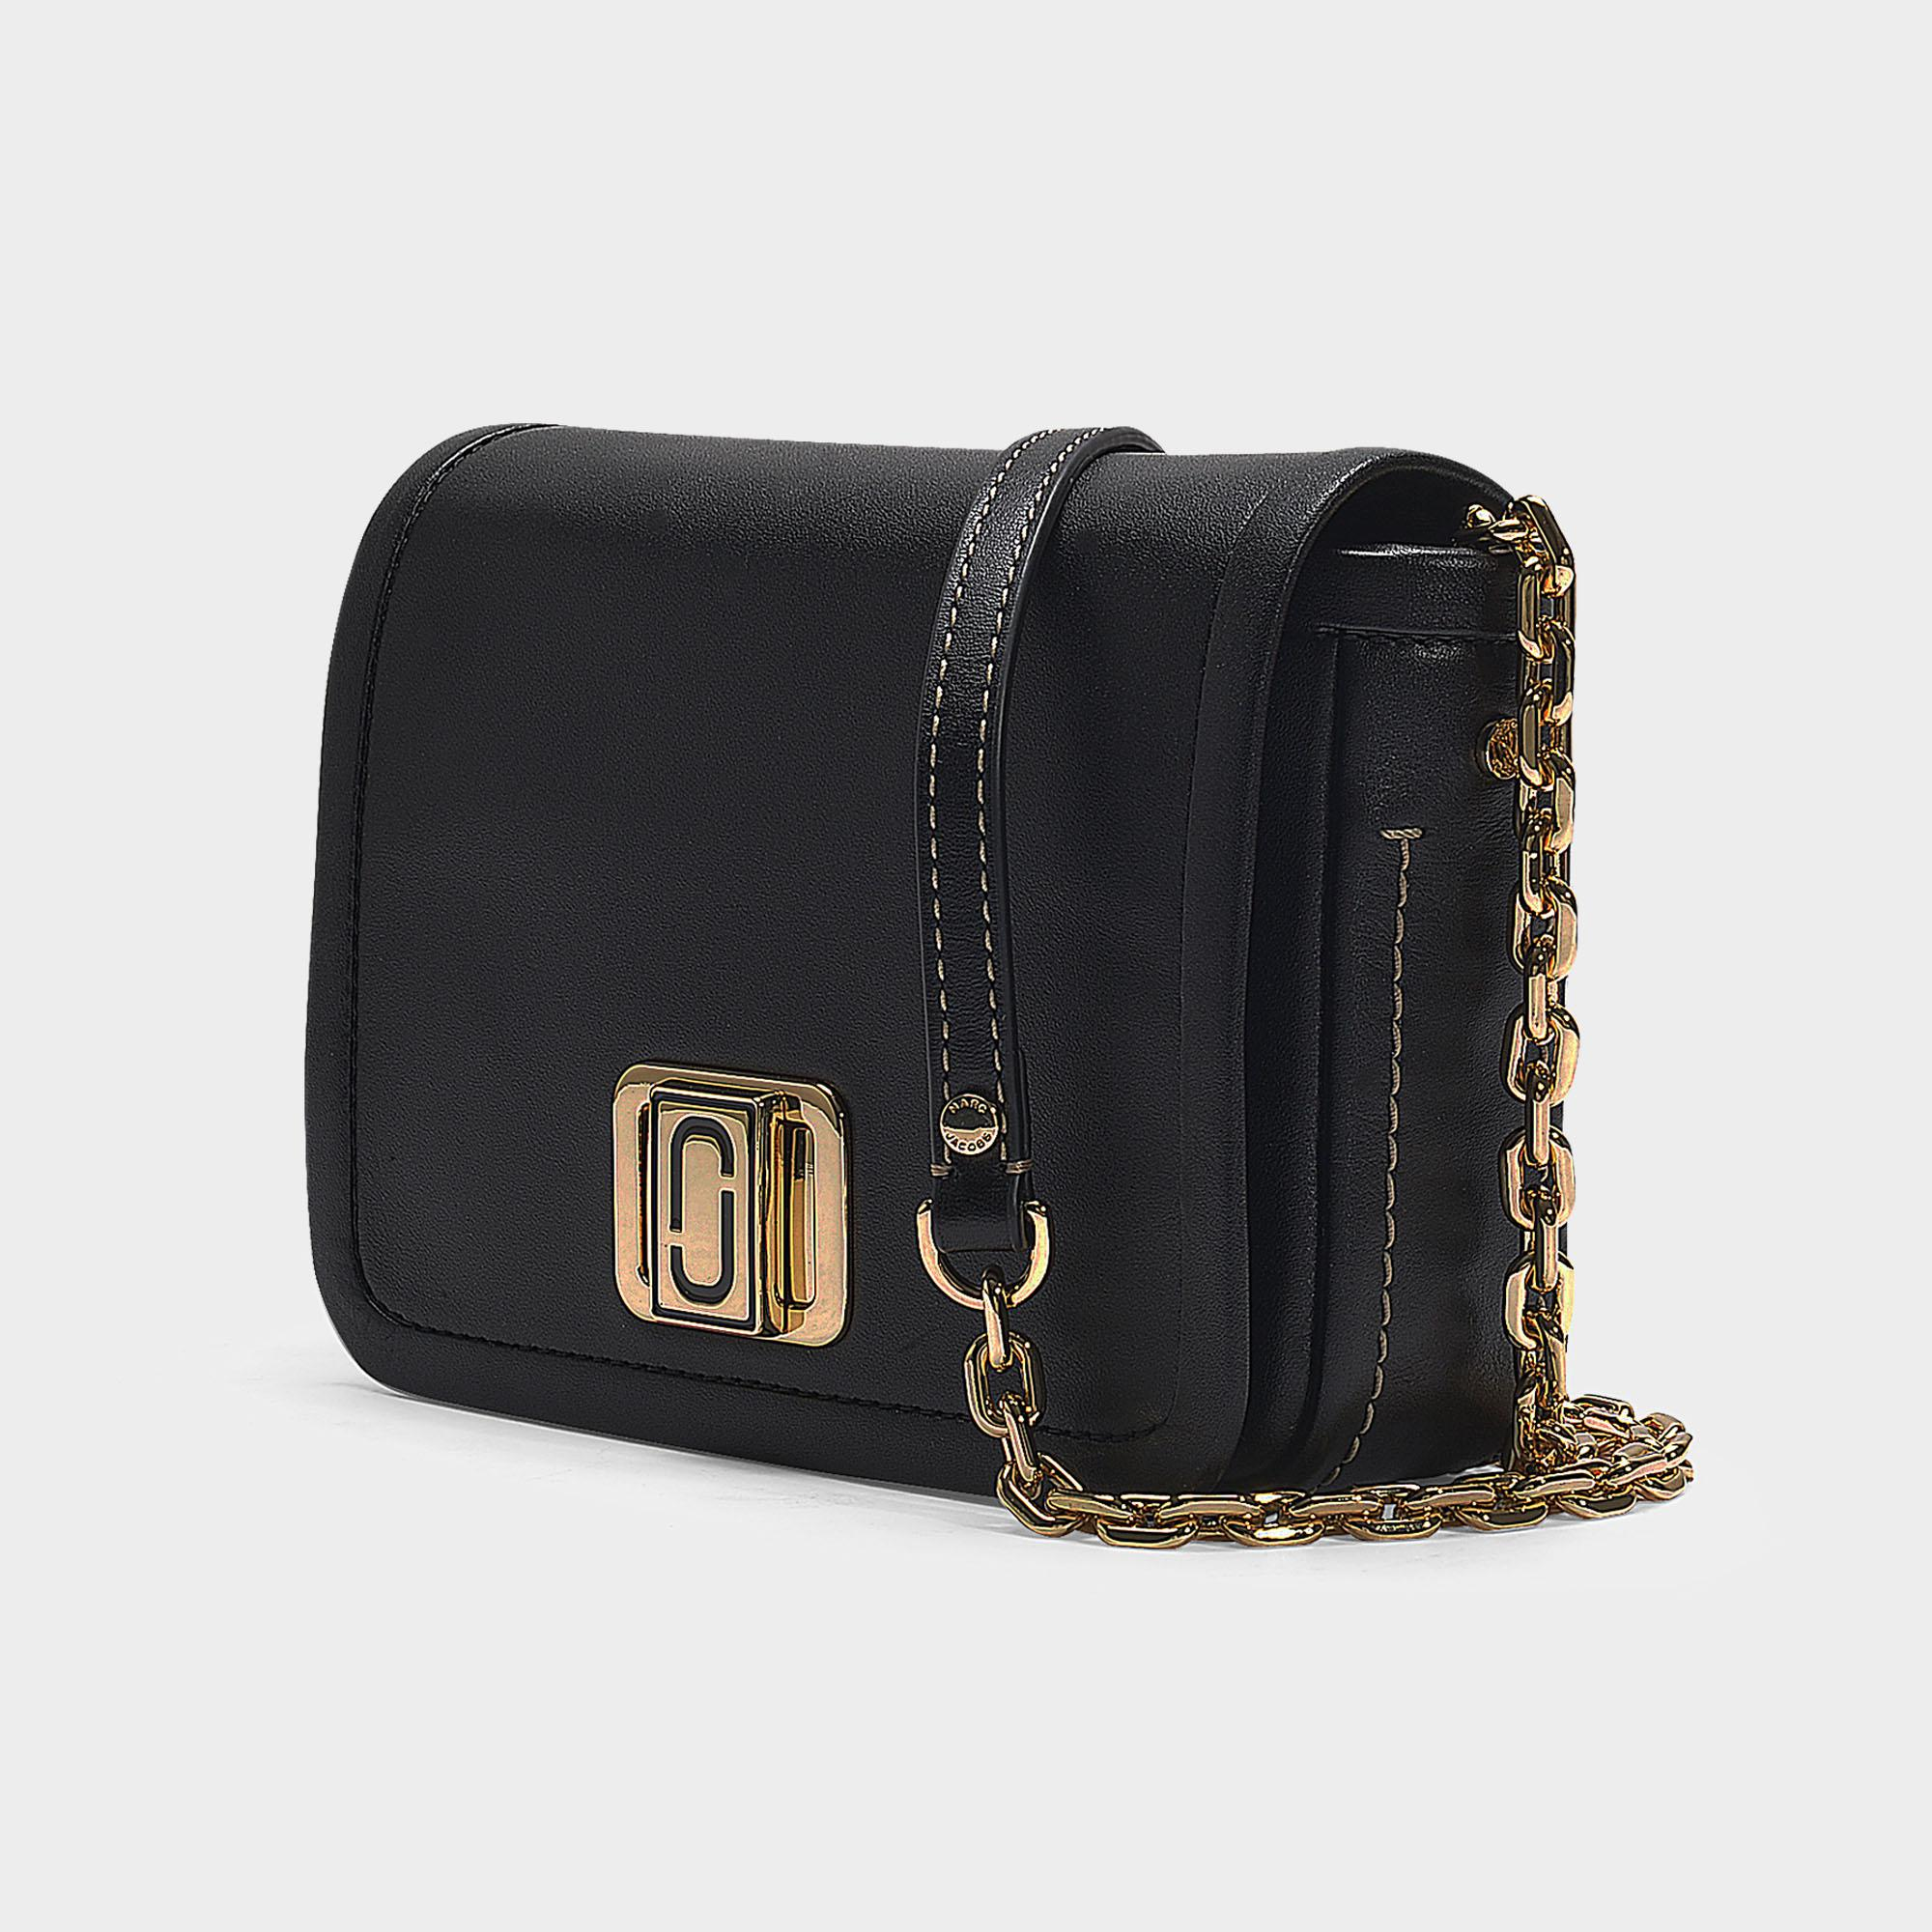 816143696ebe Lyst - Marc Jacobs The Mini Squeeze Bag With Chain In Black Calfskin ...